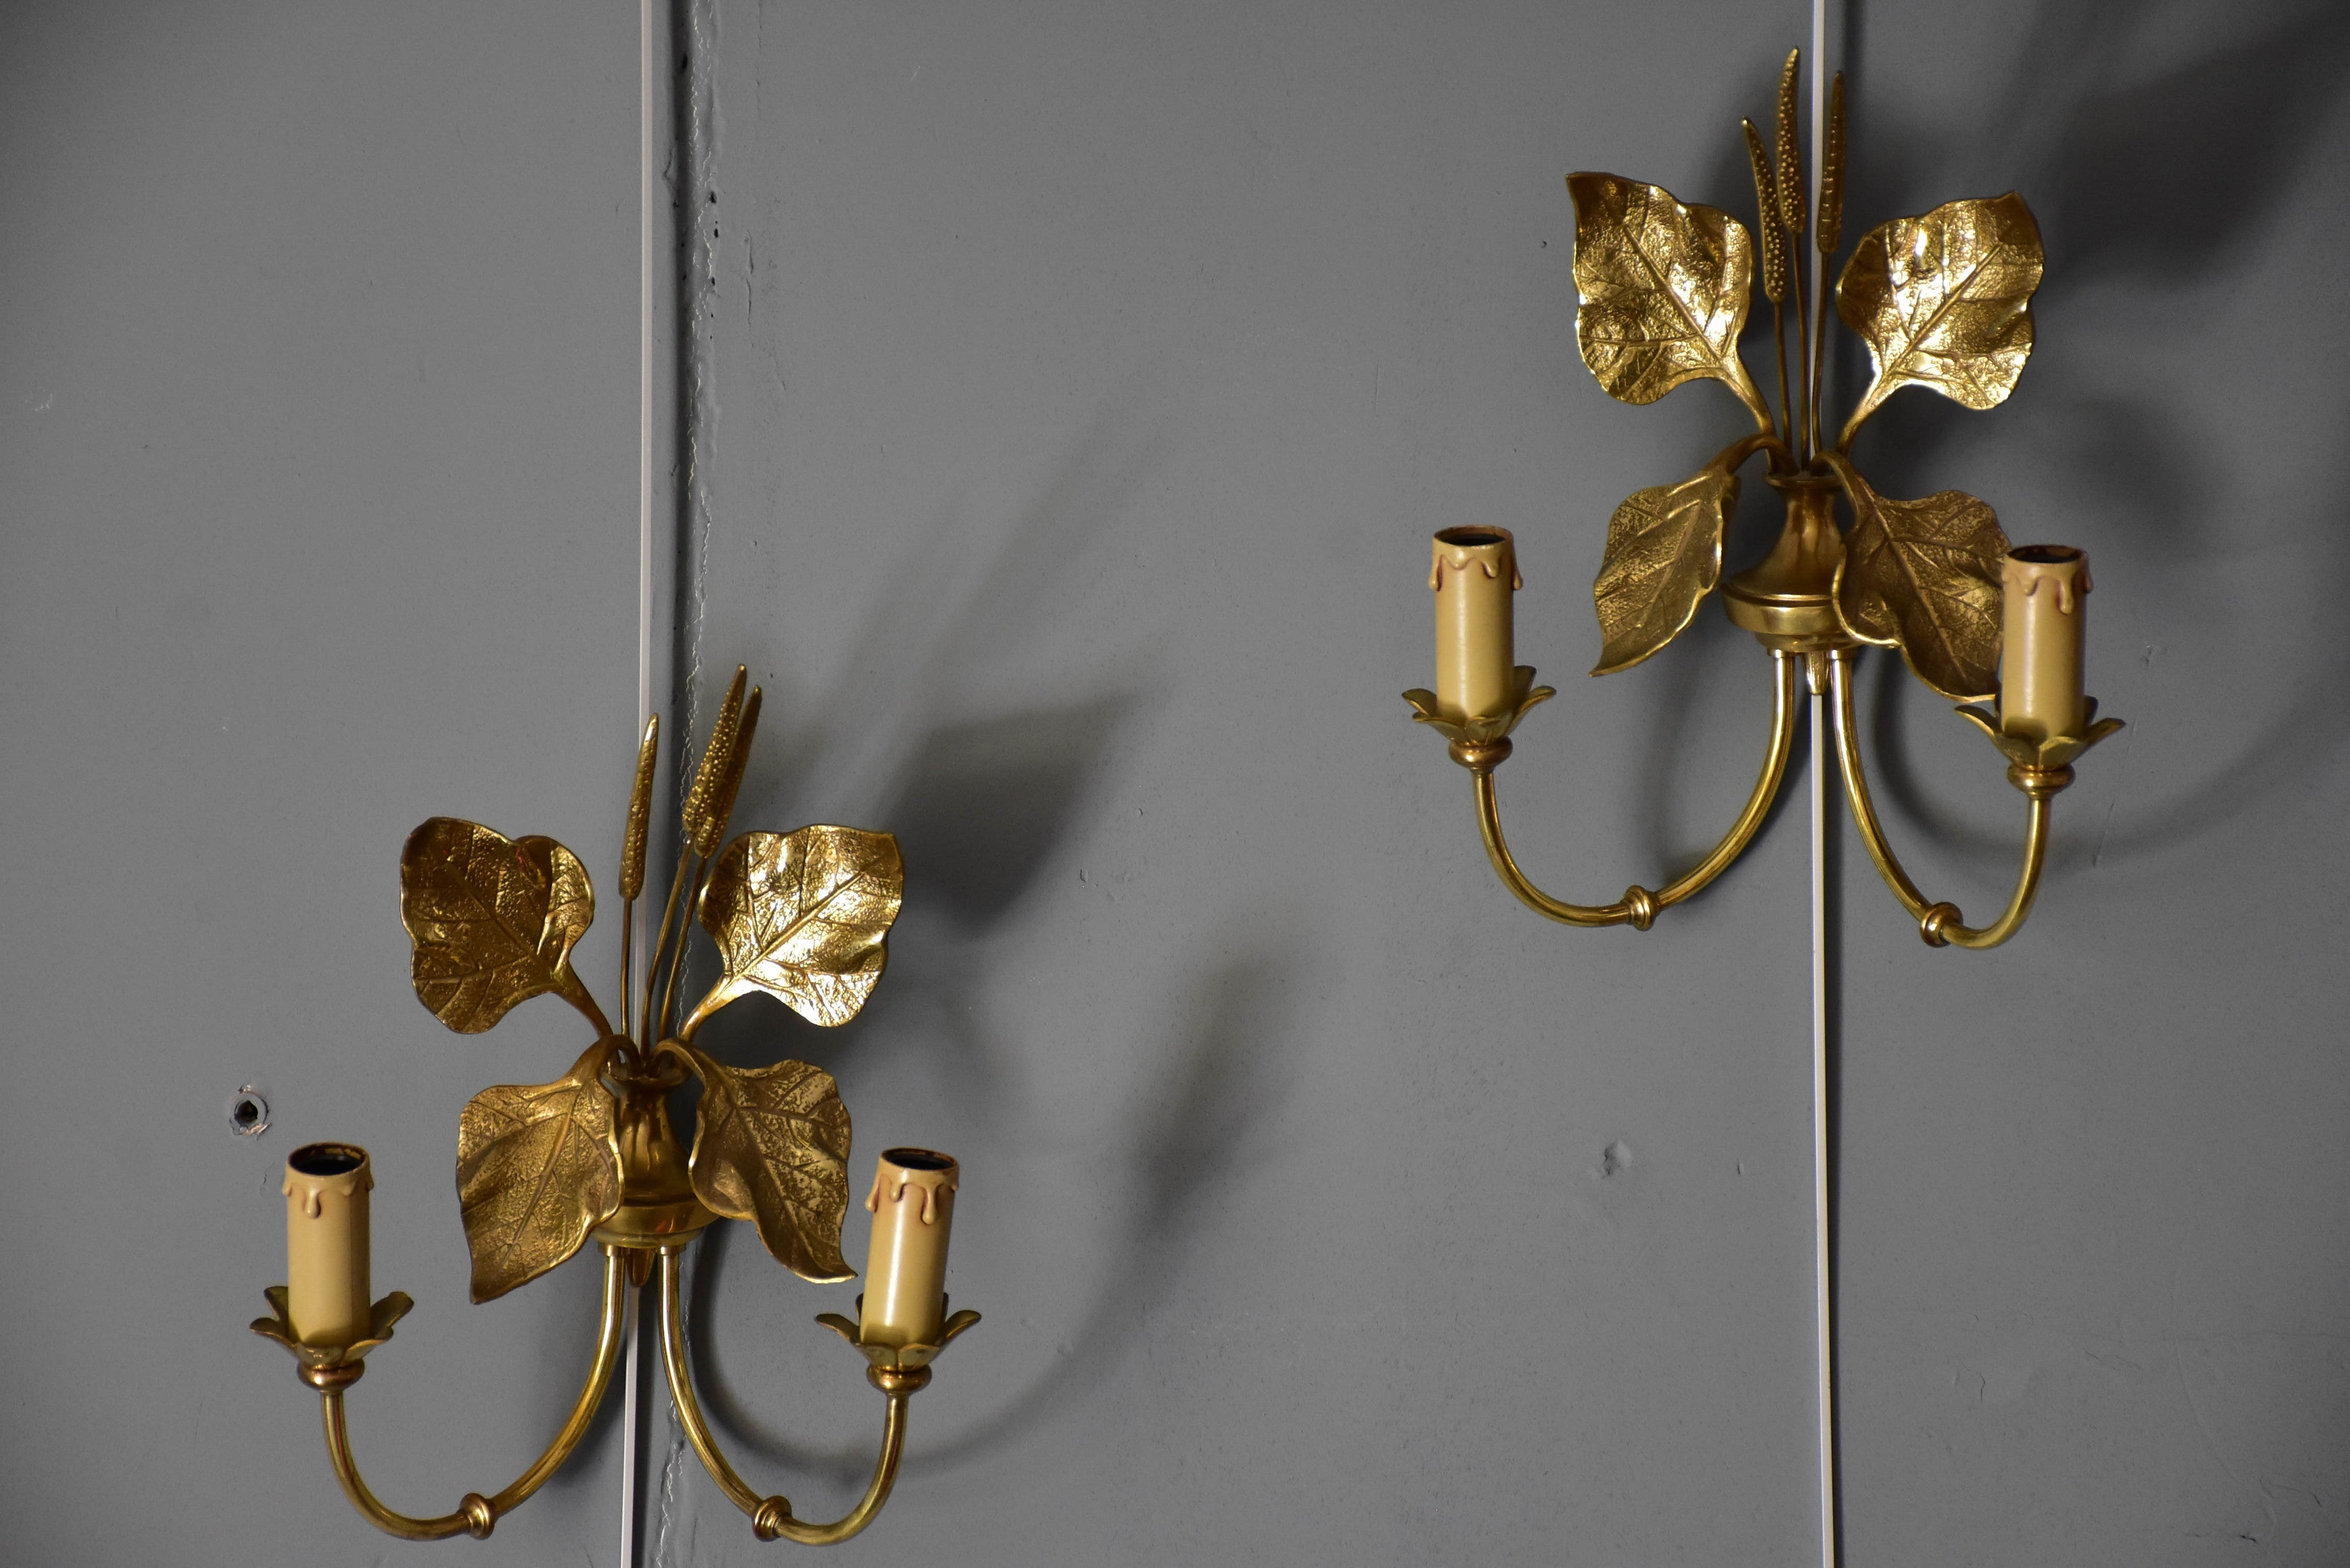 Pair of vintage French appliques attributed to Maison Charles